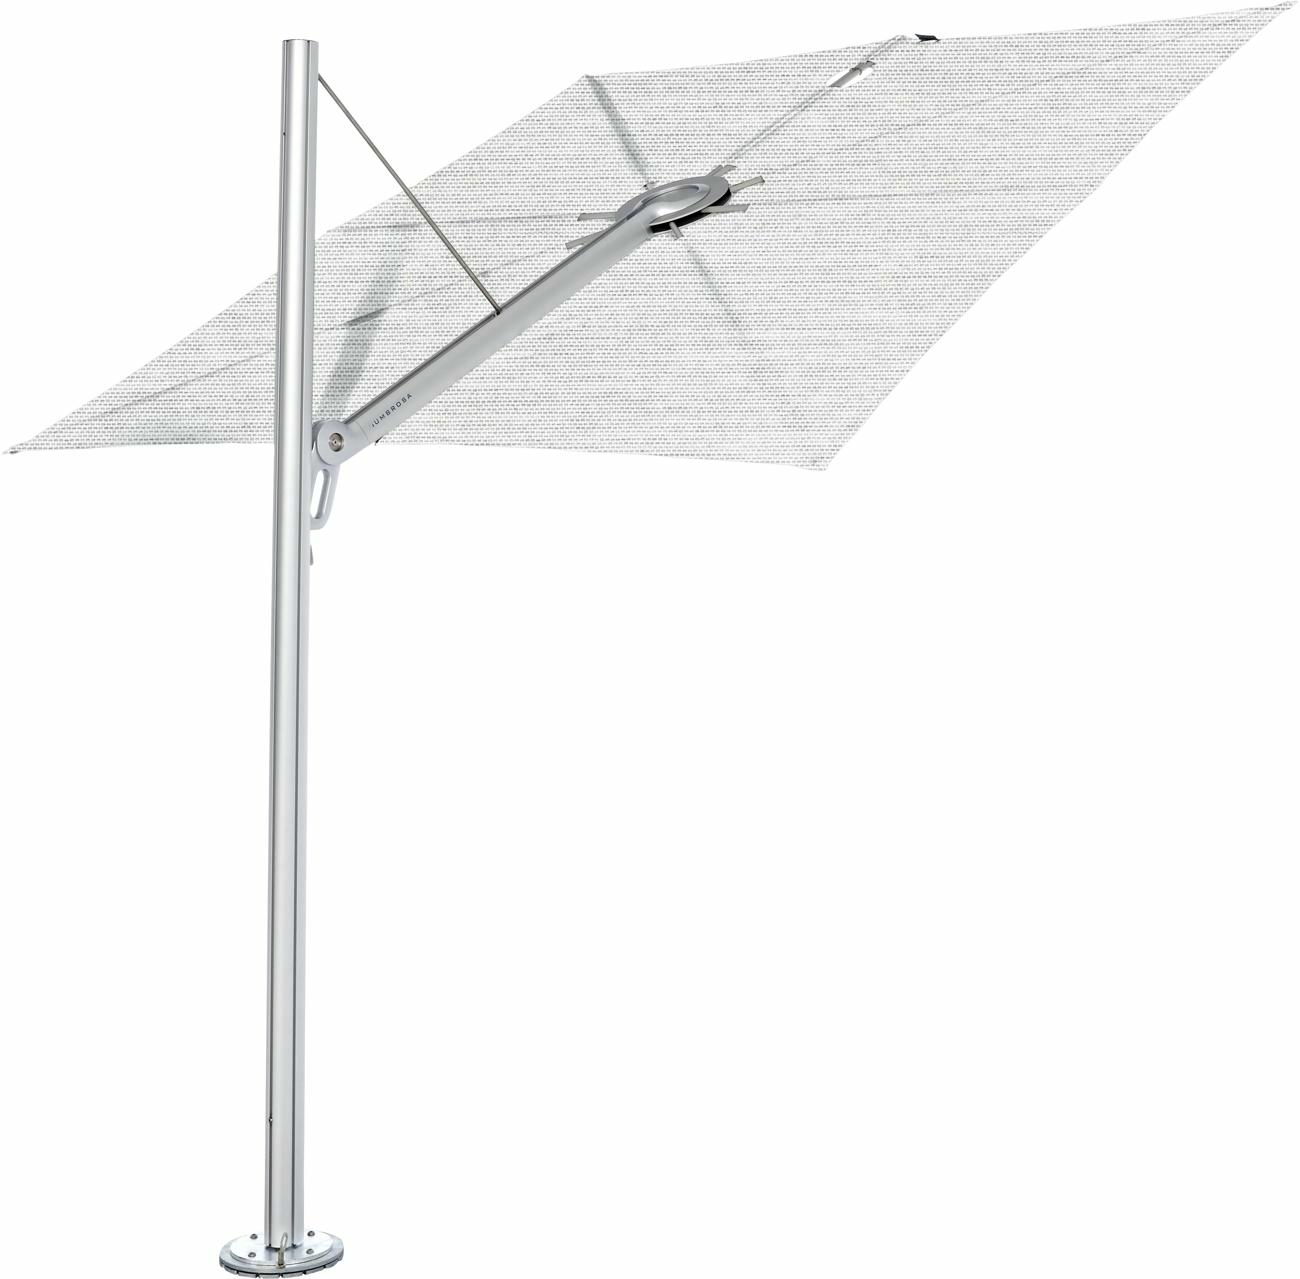 Spectra cantilever umbrella straight 90°